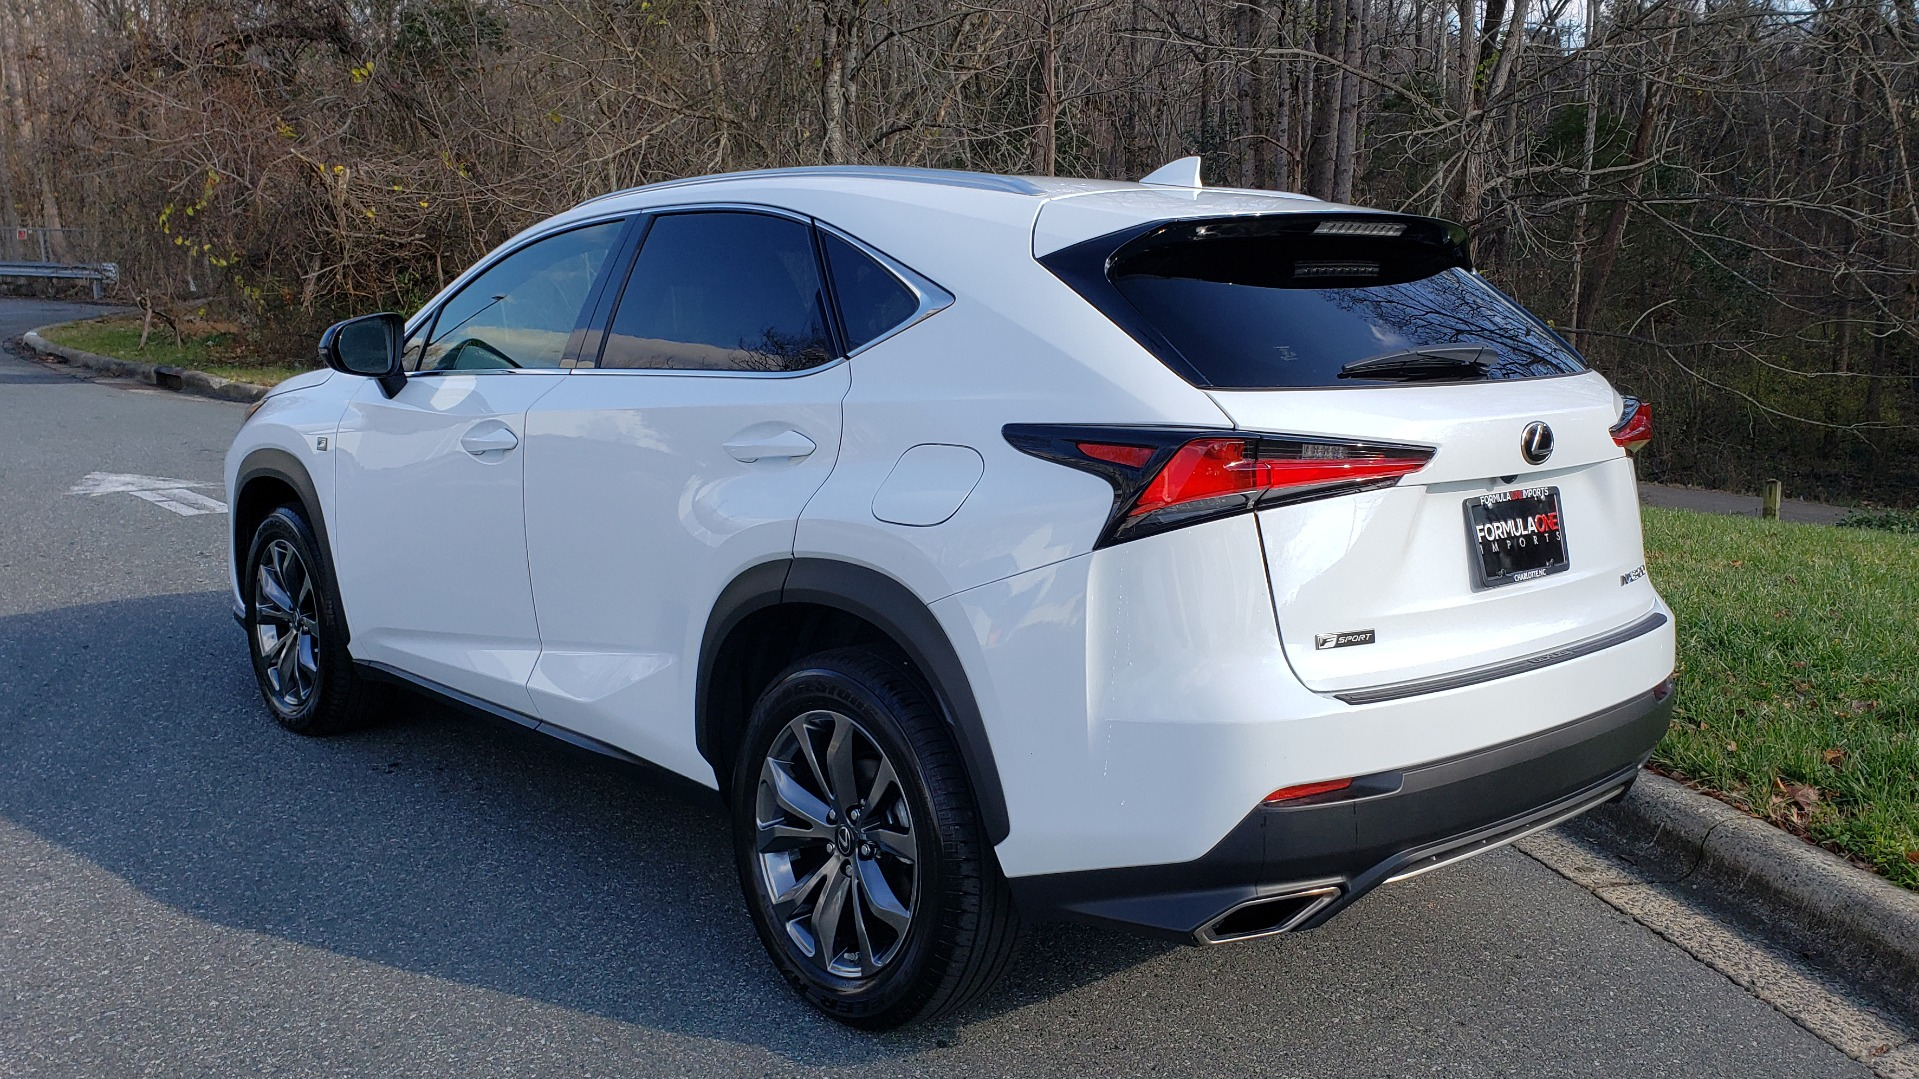 Used 2019 Lexus NX 300 F-SPORT / 2.0L TURBO / LEATHER / 18IN WHEELS / REARVIEW for sale $31,195 at Formula Imports in Charlotte NC 28227 3